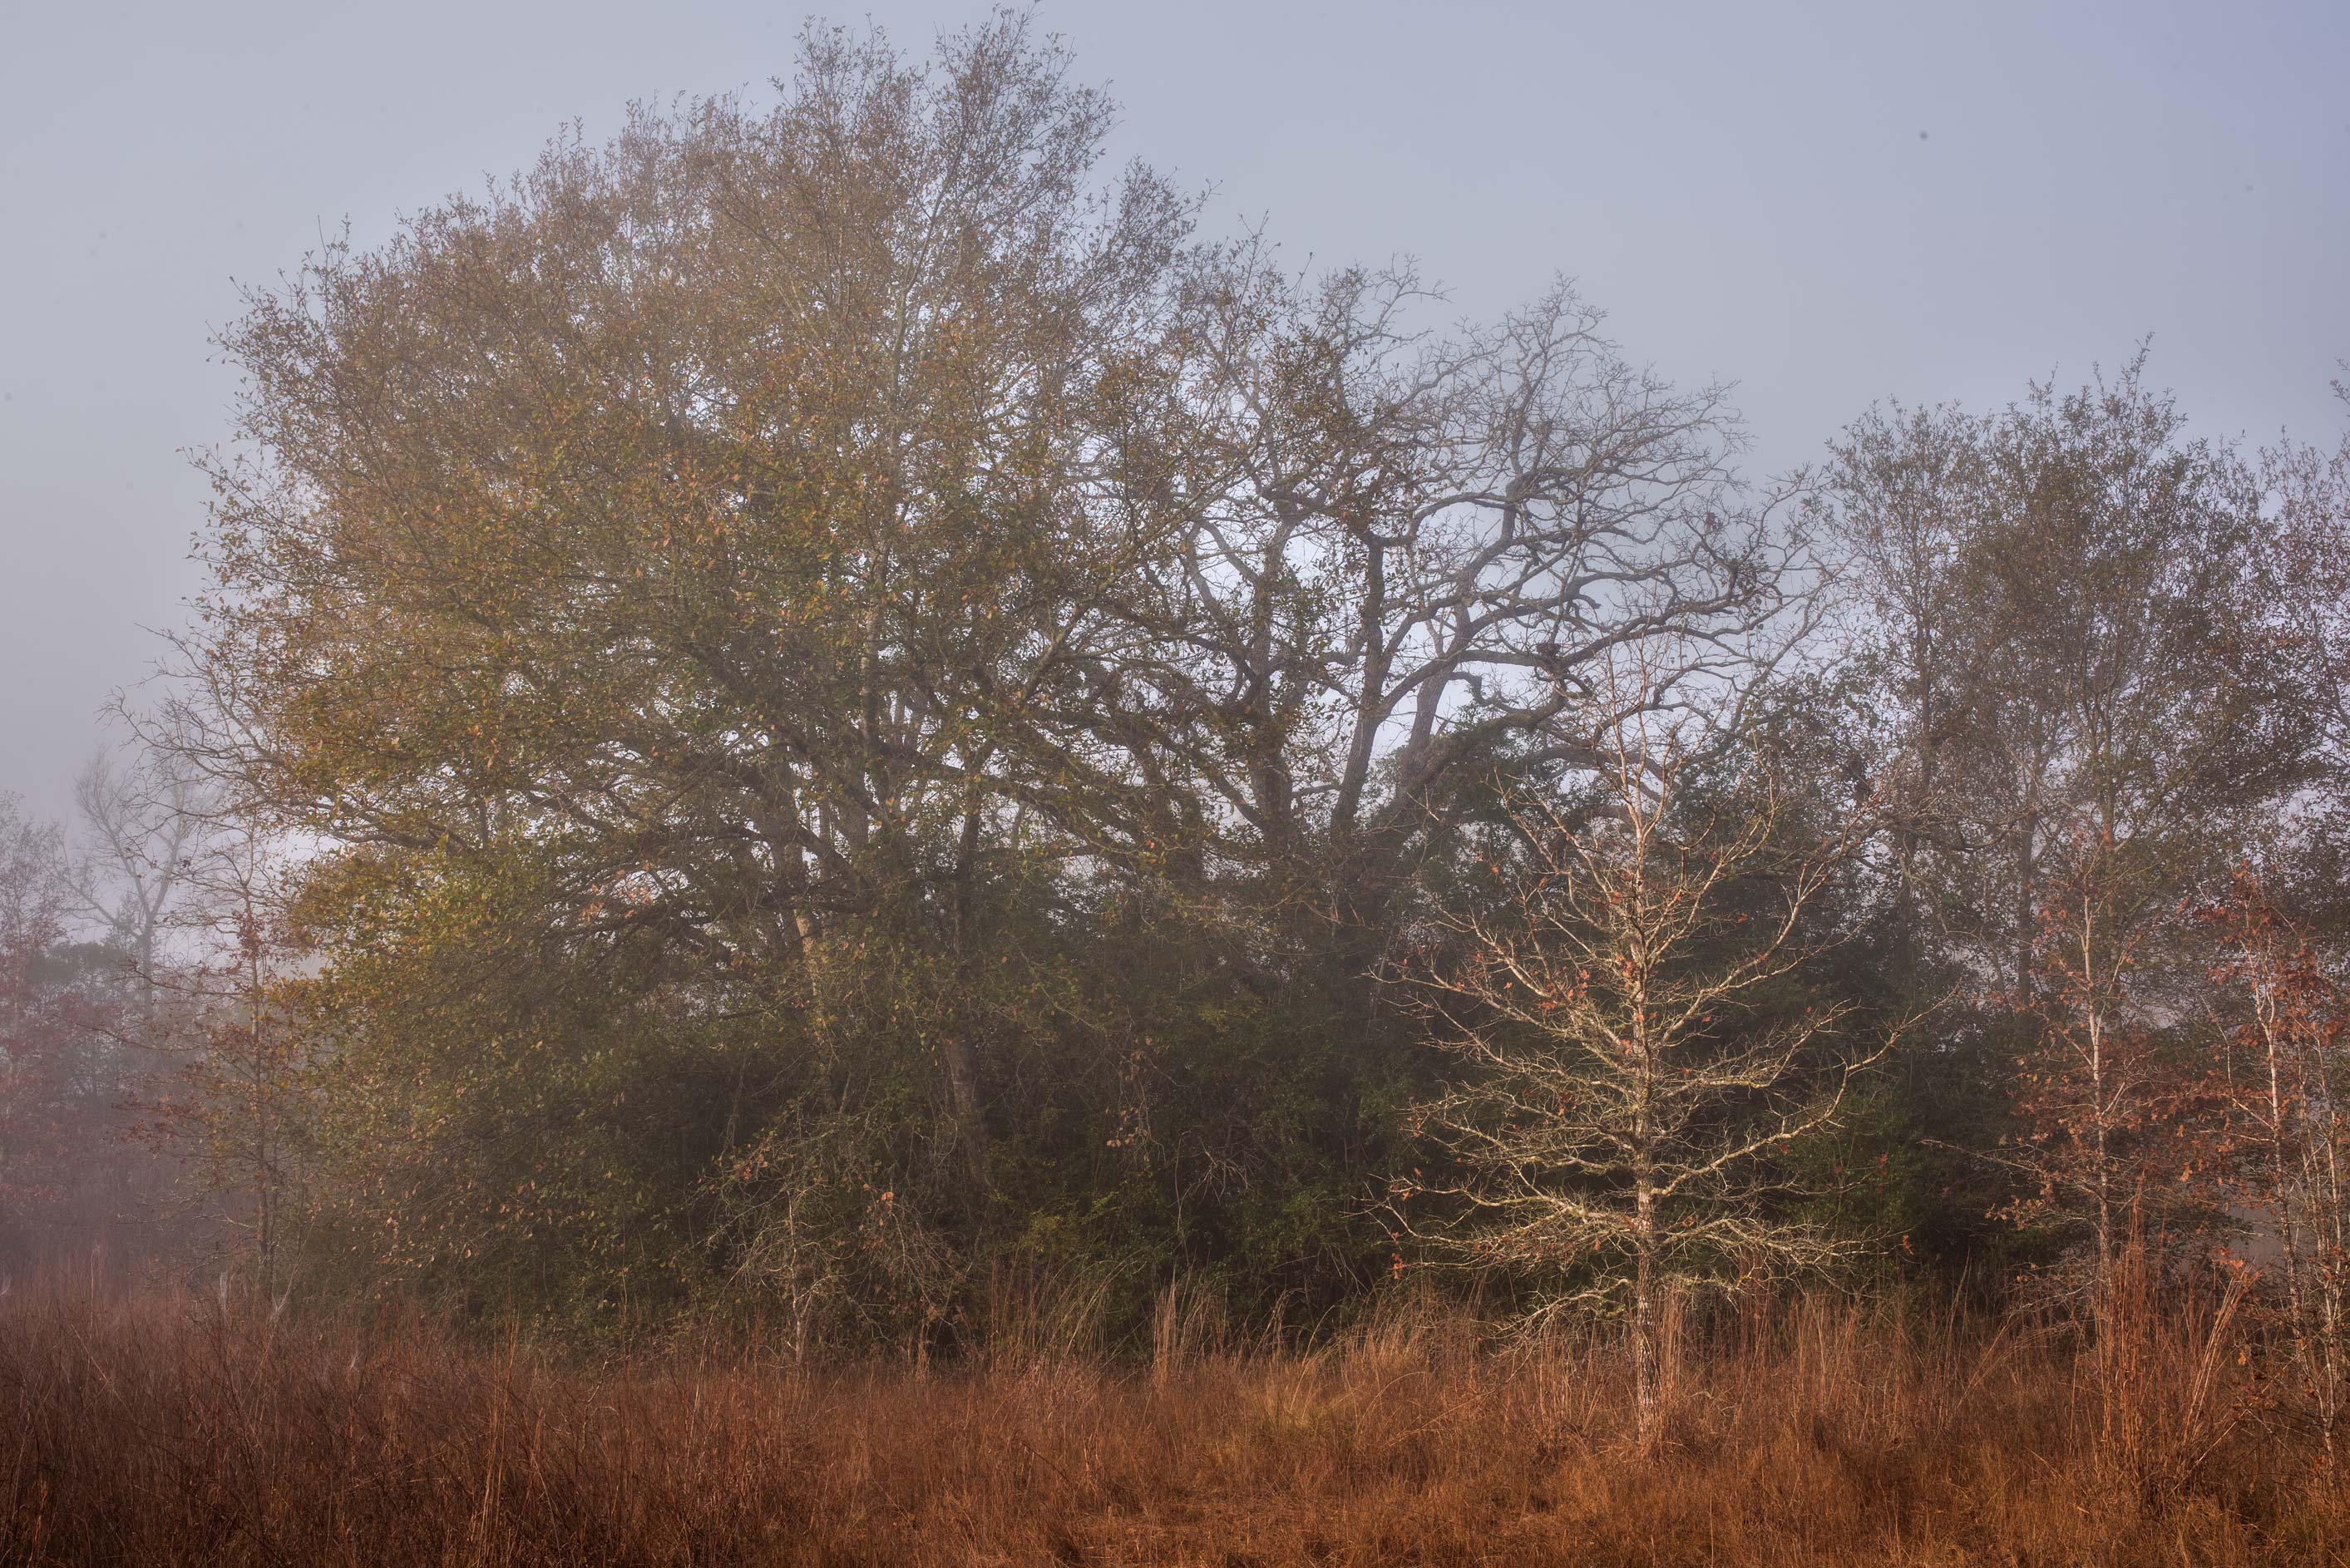 Prairie and oaks in mist in Lick Creek Park. College Station, Texas